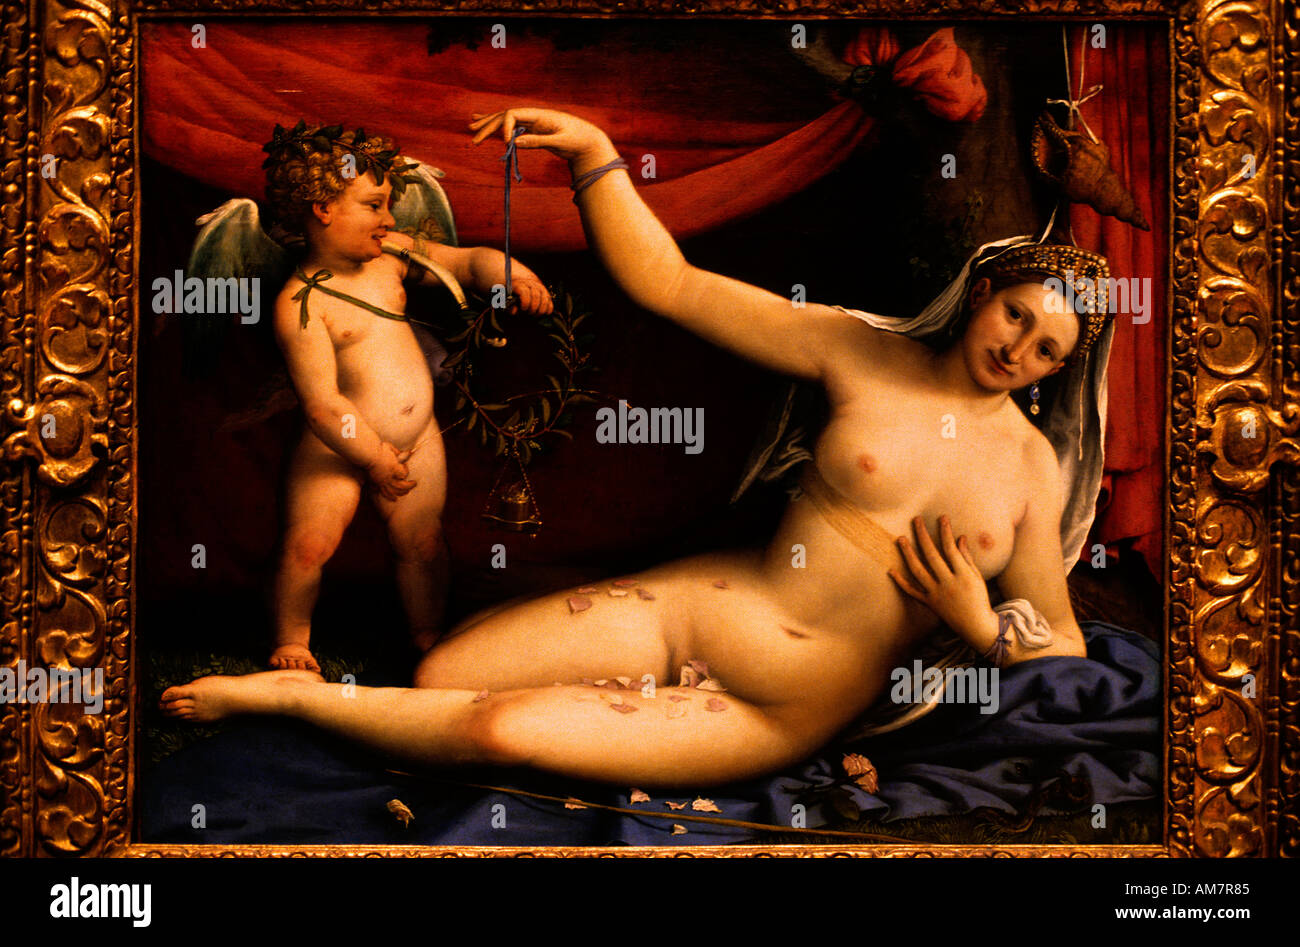 Venus and Cupid by Lorenzo Lotte 1480  painting  painting  art  depiction picture portrayal - Stock Image